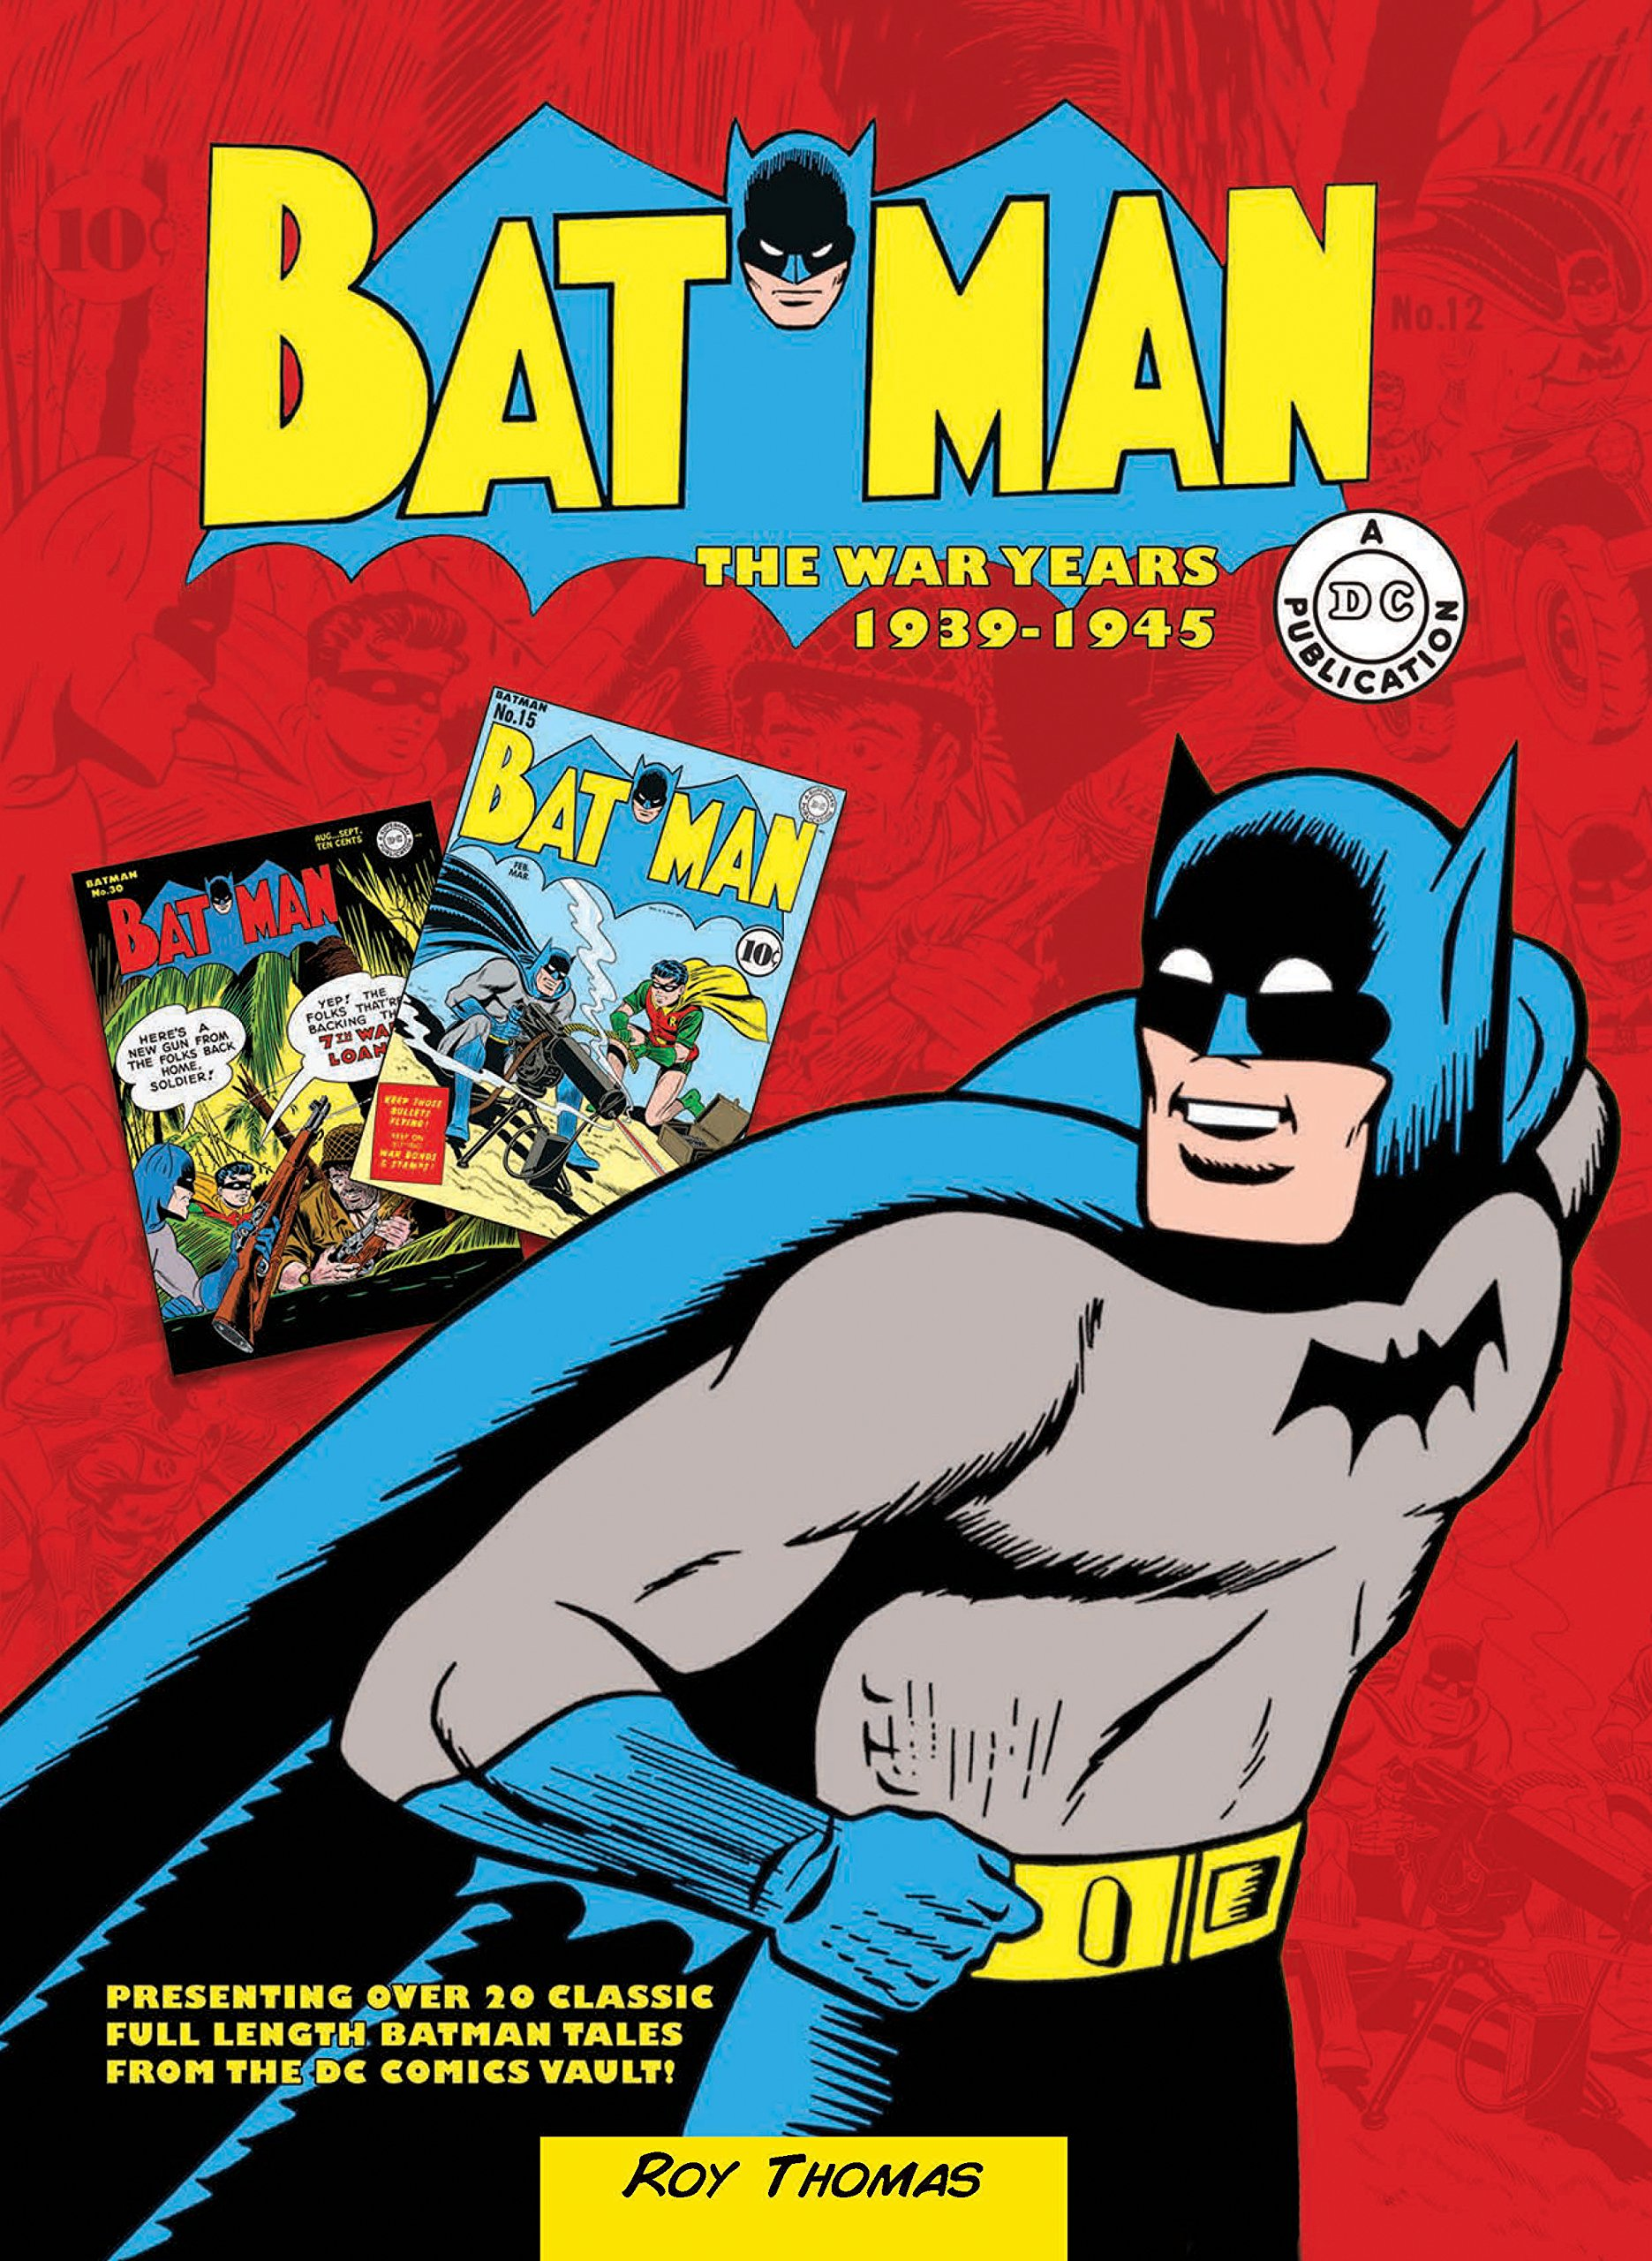 Batman the war years 1939 1945 presenting over 20 classic full batman the war years 1939 1945 presenting over 20 classic full length batman tales from the dc comics vault roy thomas 9780785832836 amazon books fandeluxe Images